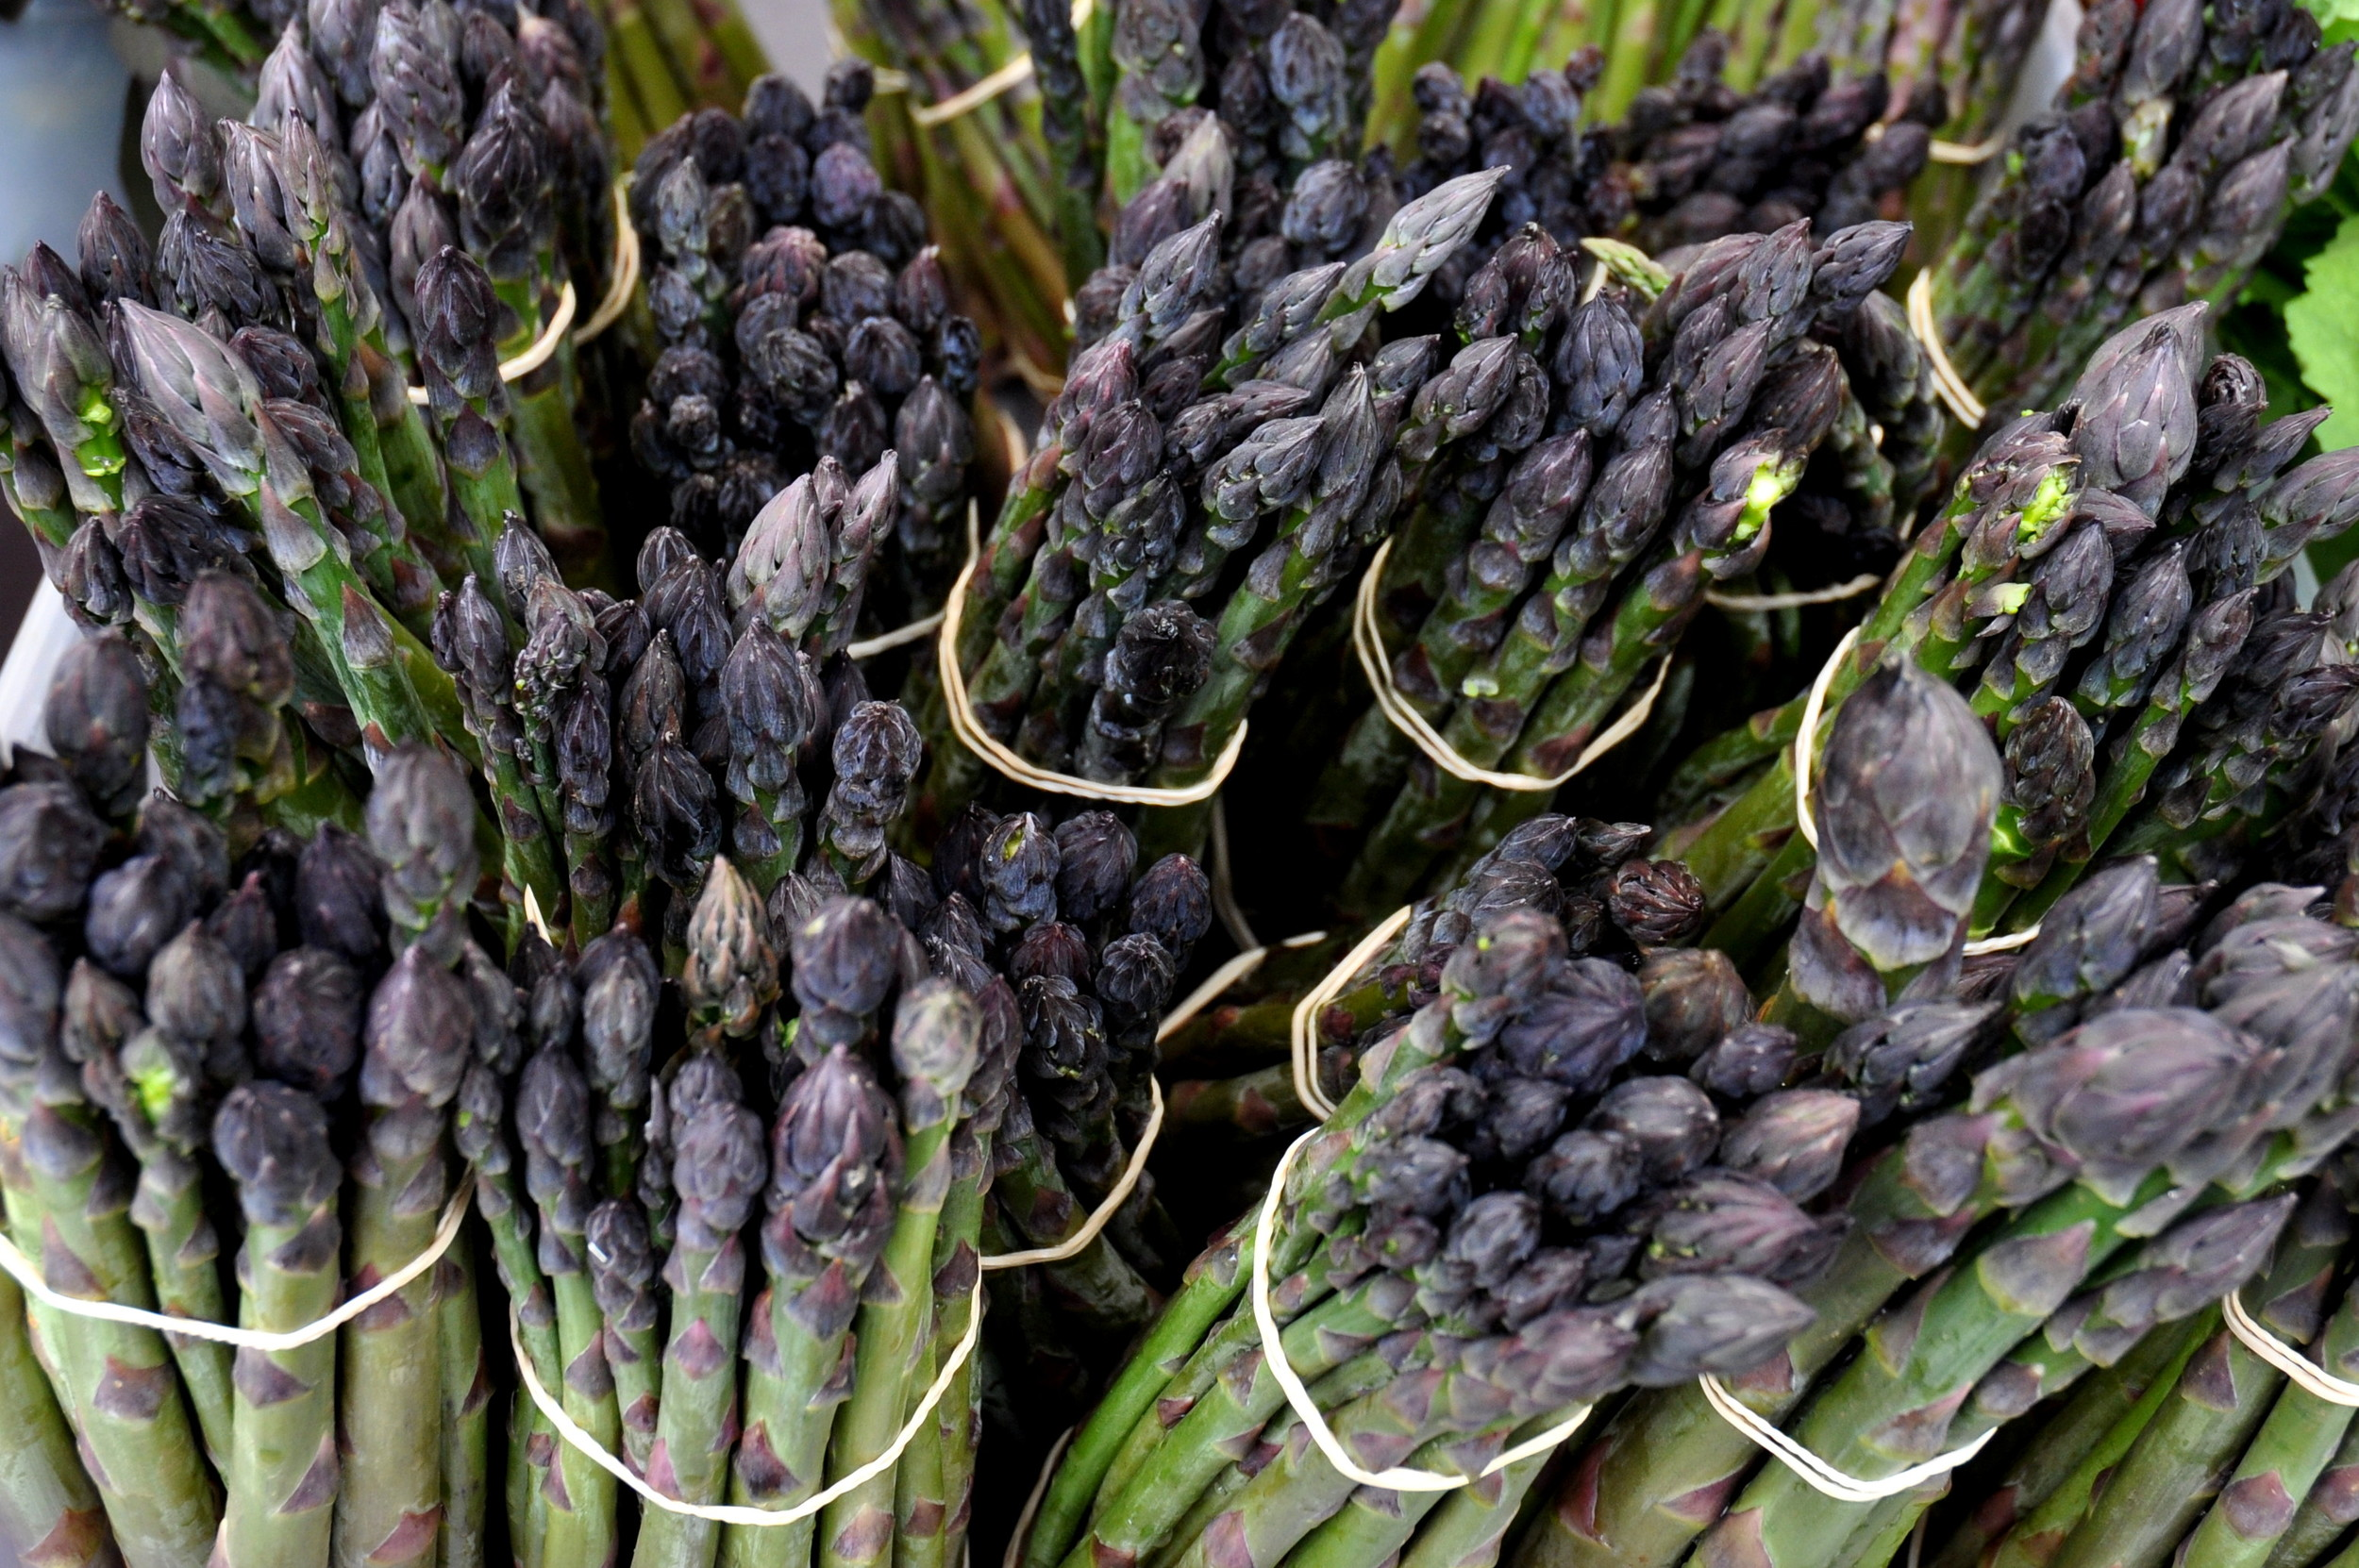 Organic asparagus from Alm Hill Gardens. Photo copyright 2013 by Zachary D. Lyons.